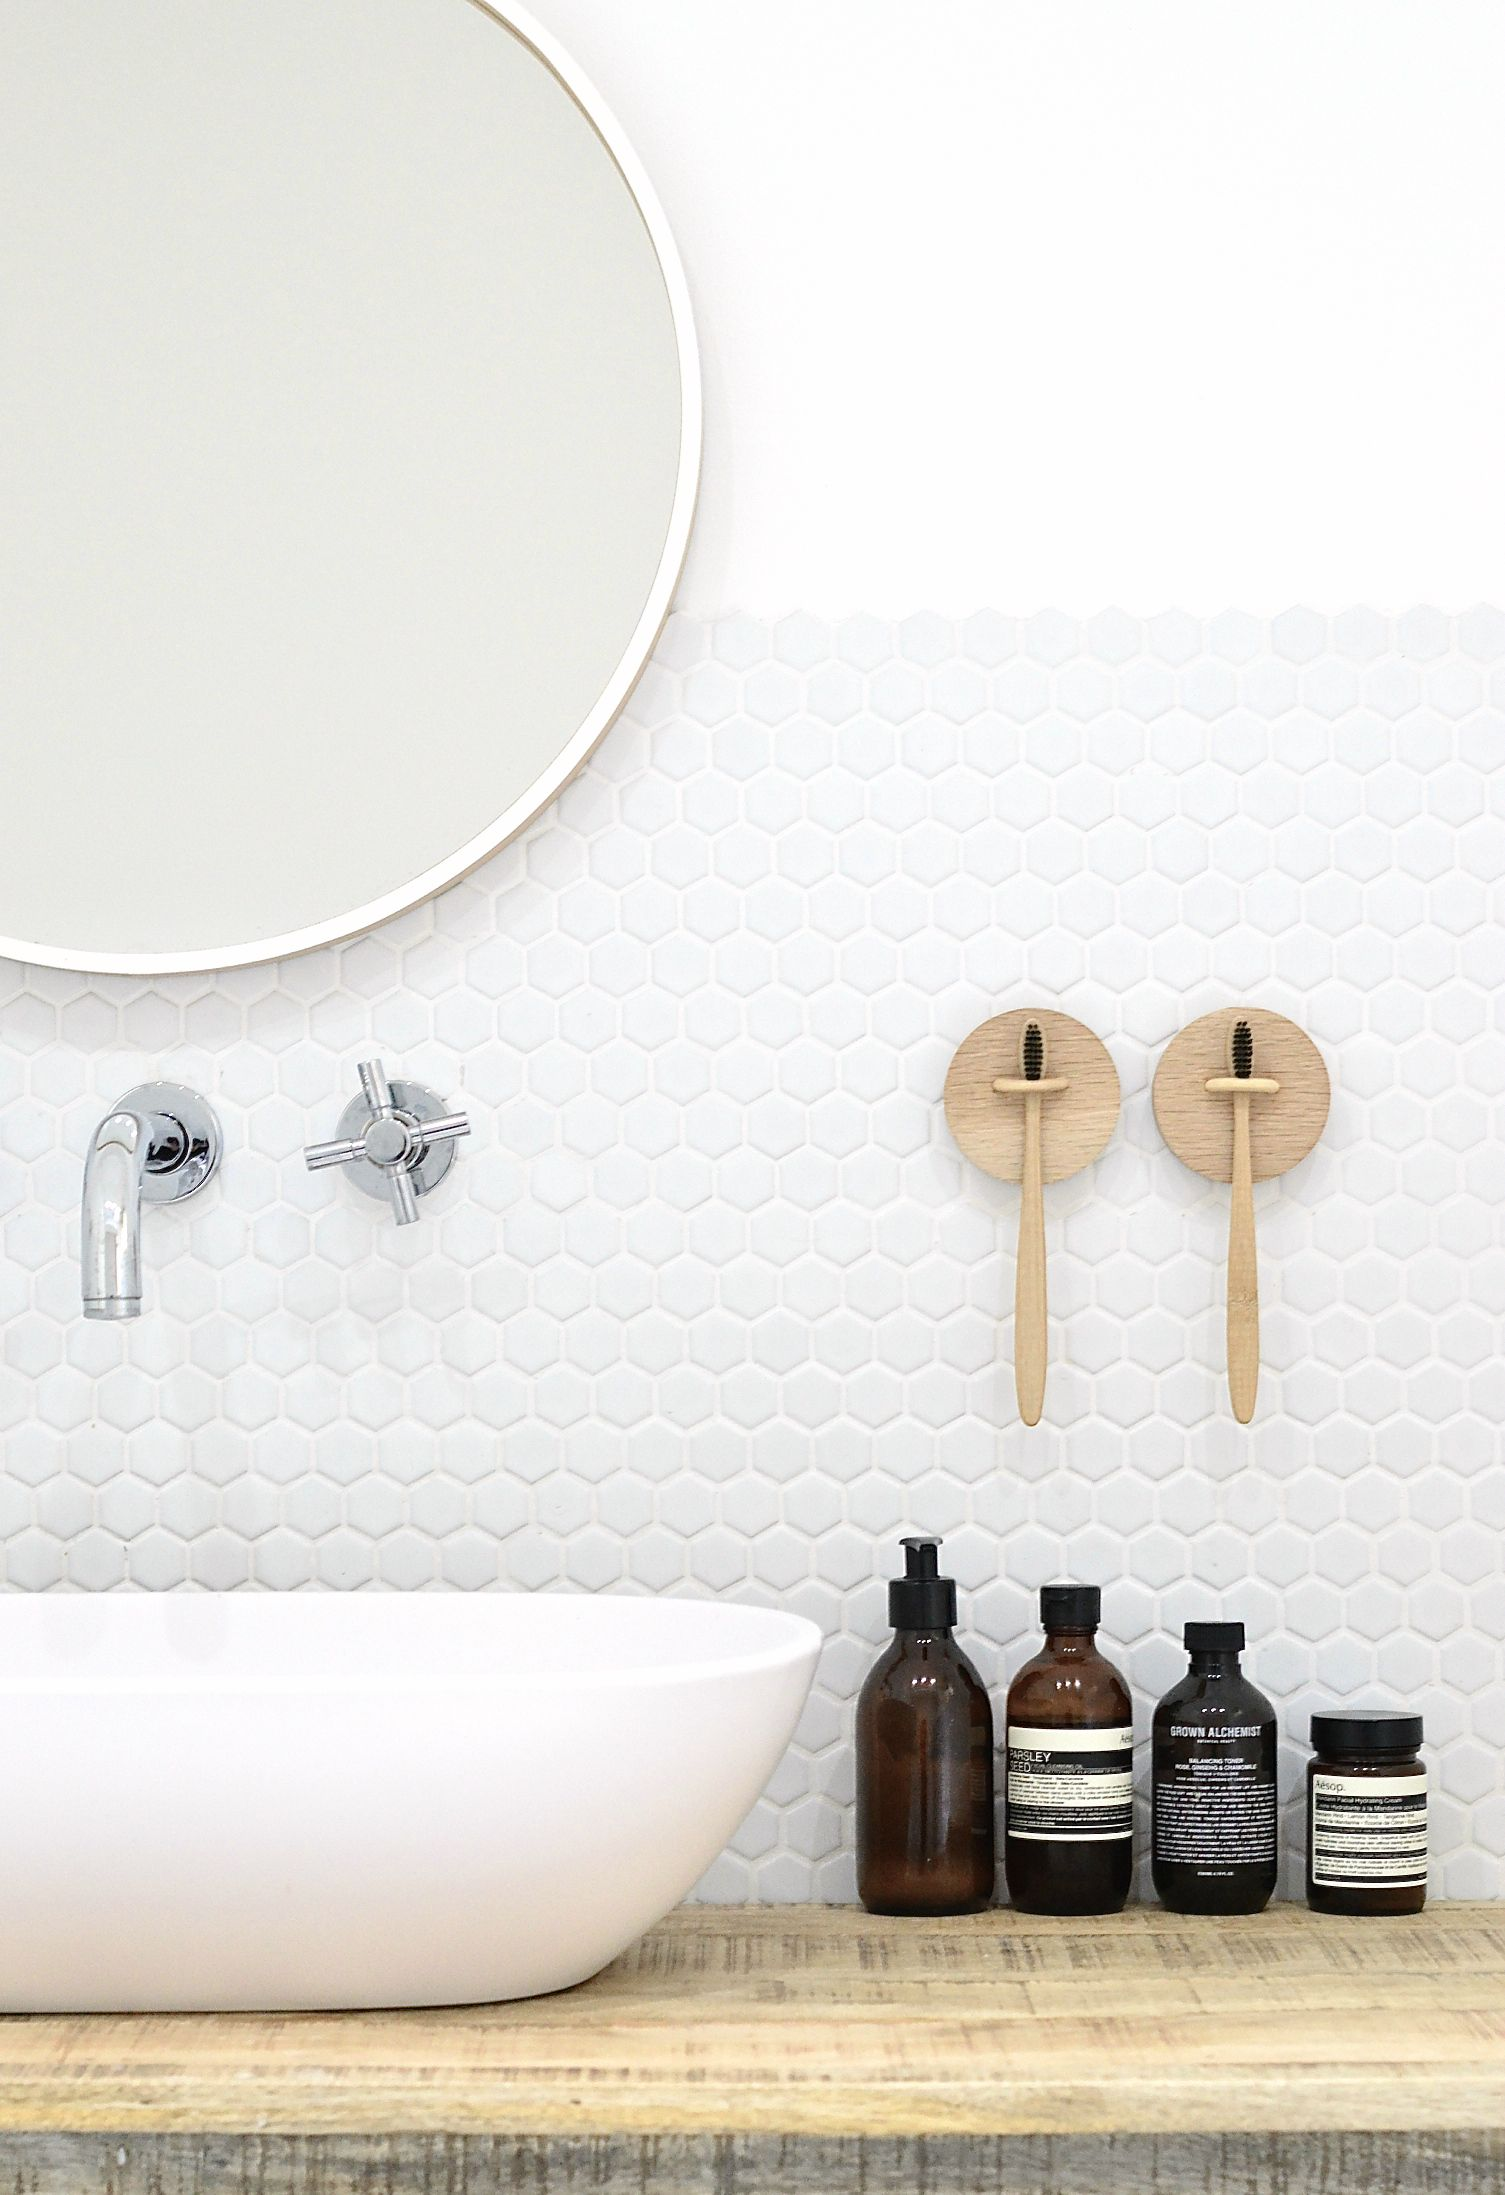 Diy Wall Mounted Toothbrush Holder Diy Home Decor Your